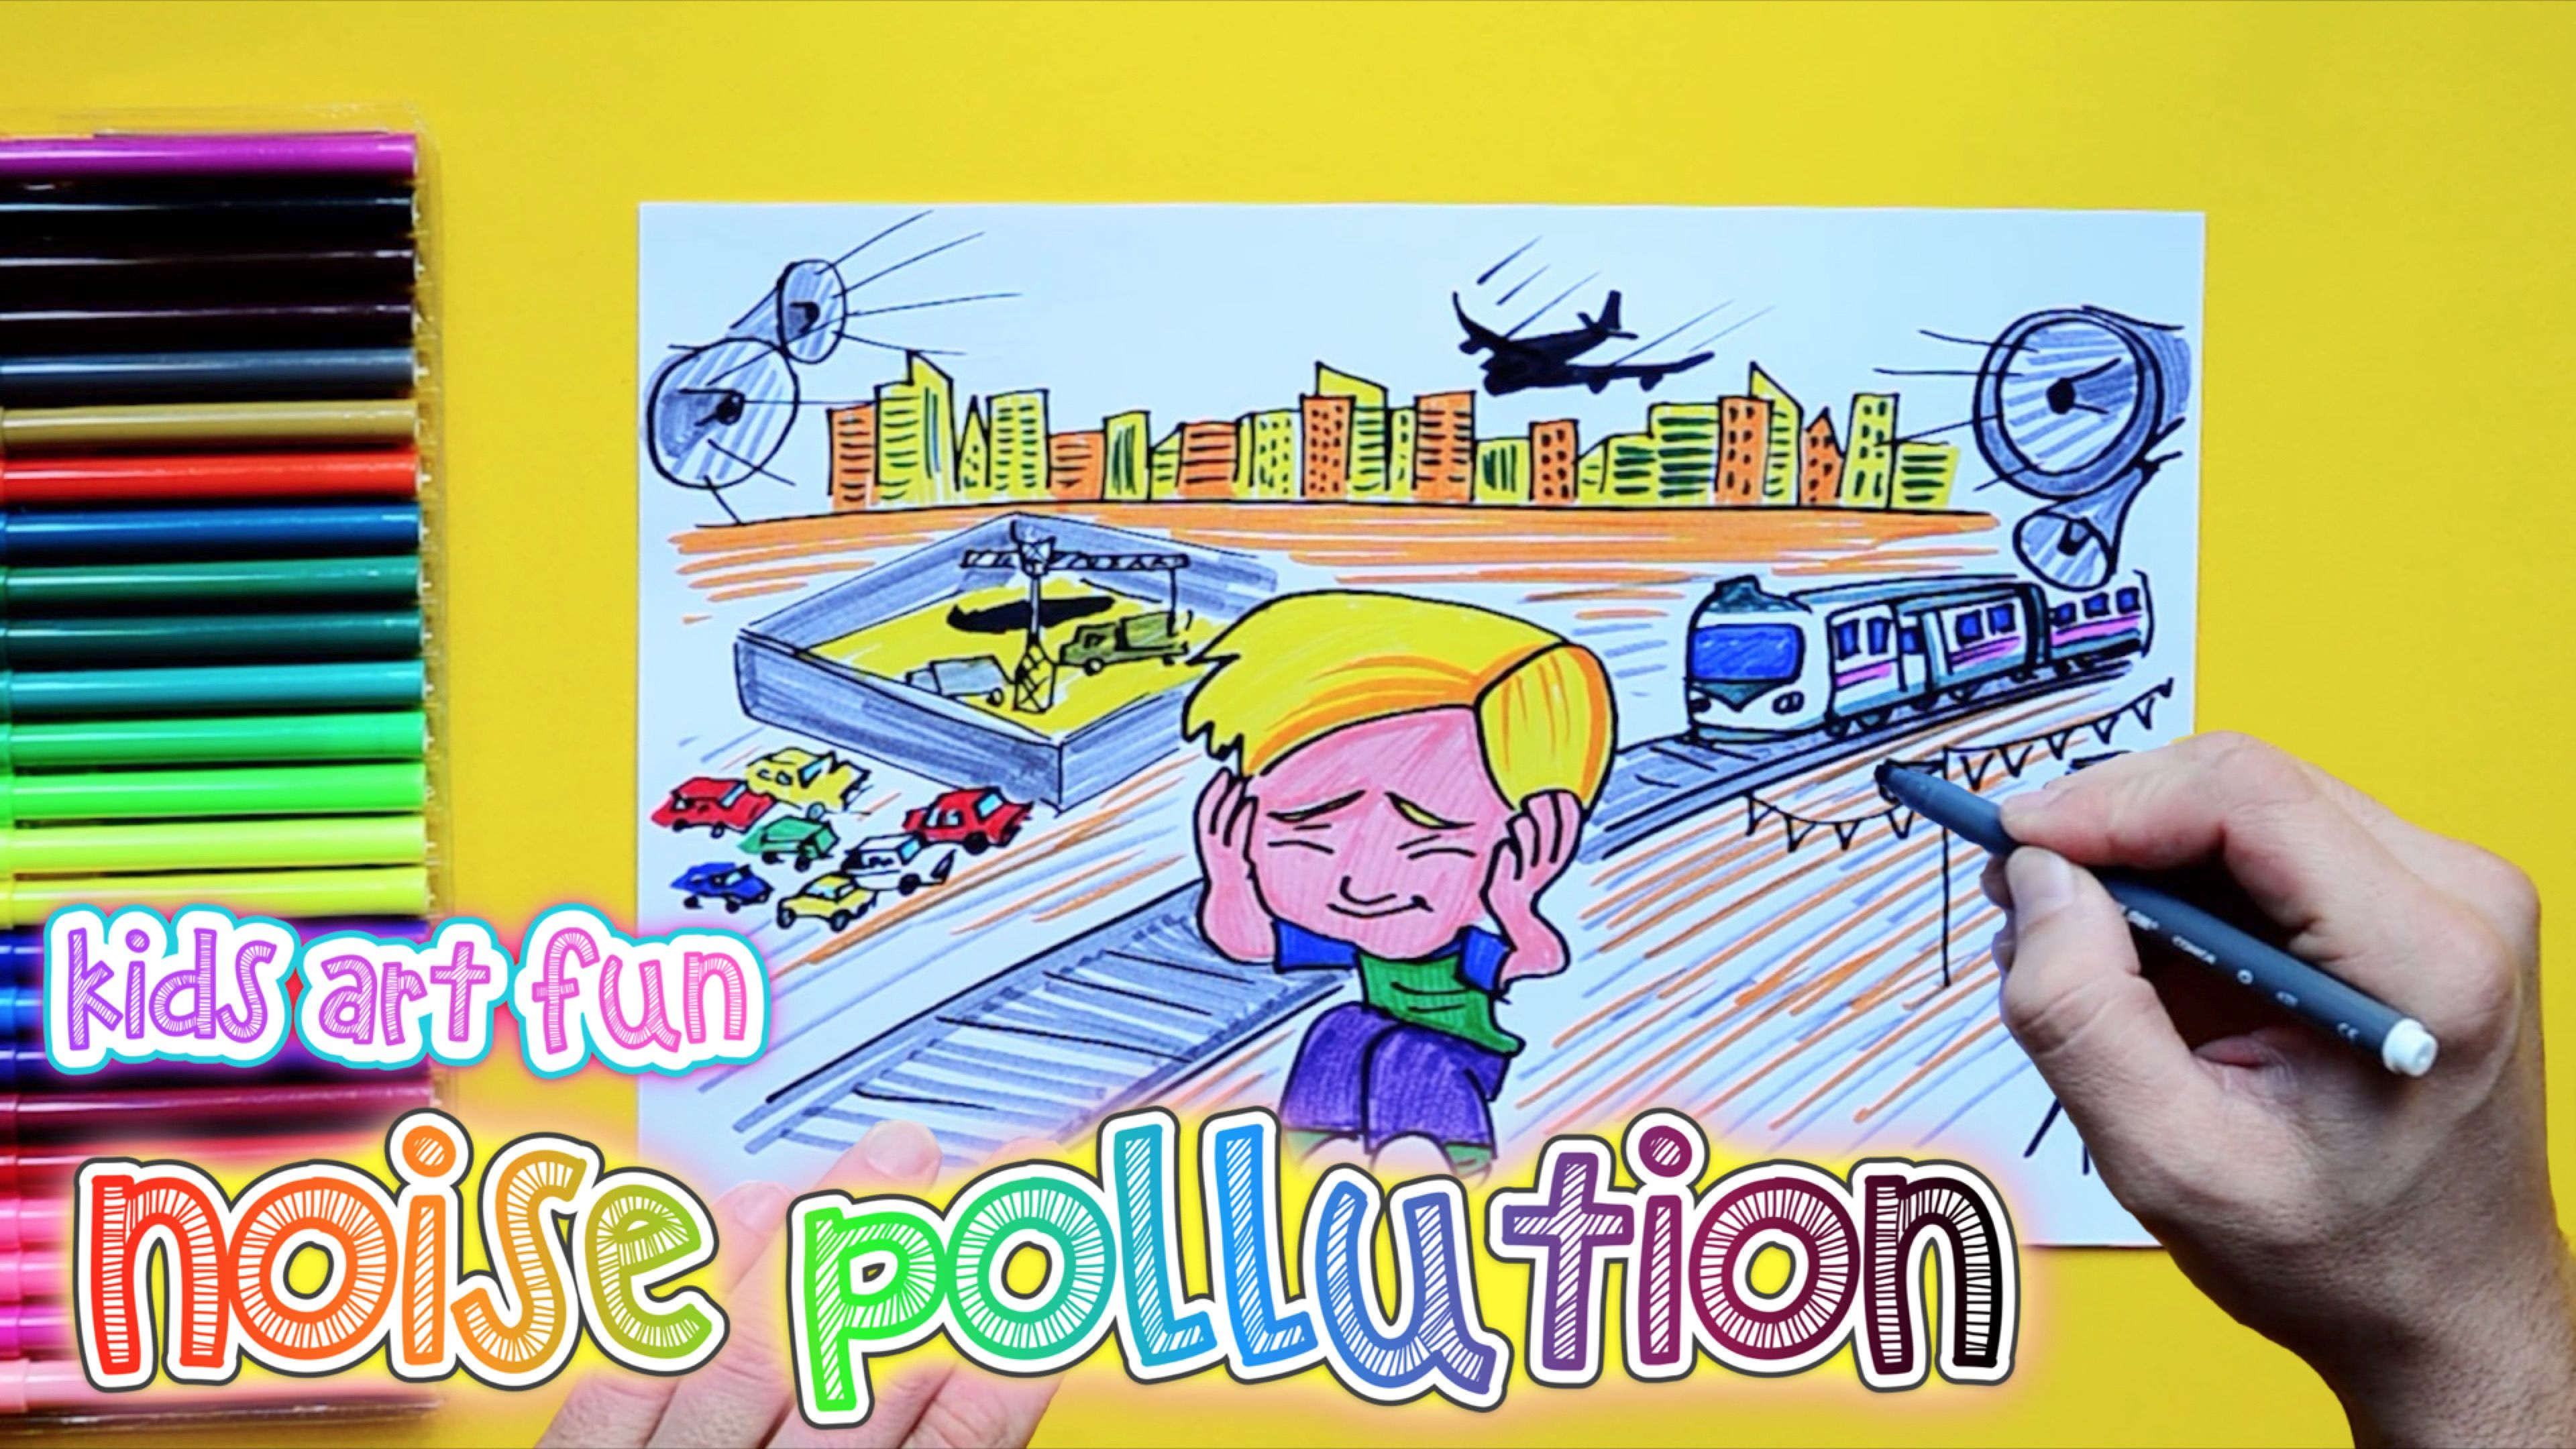 How To Draw And Color Noise Pollution